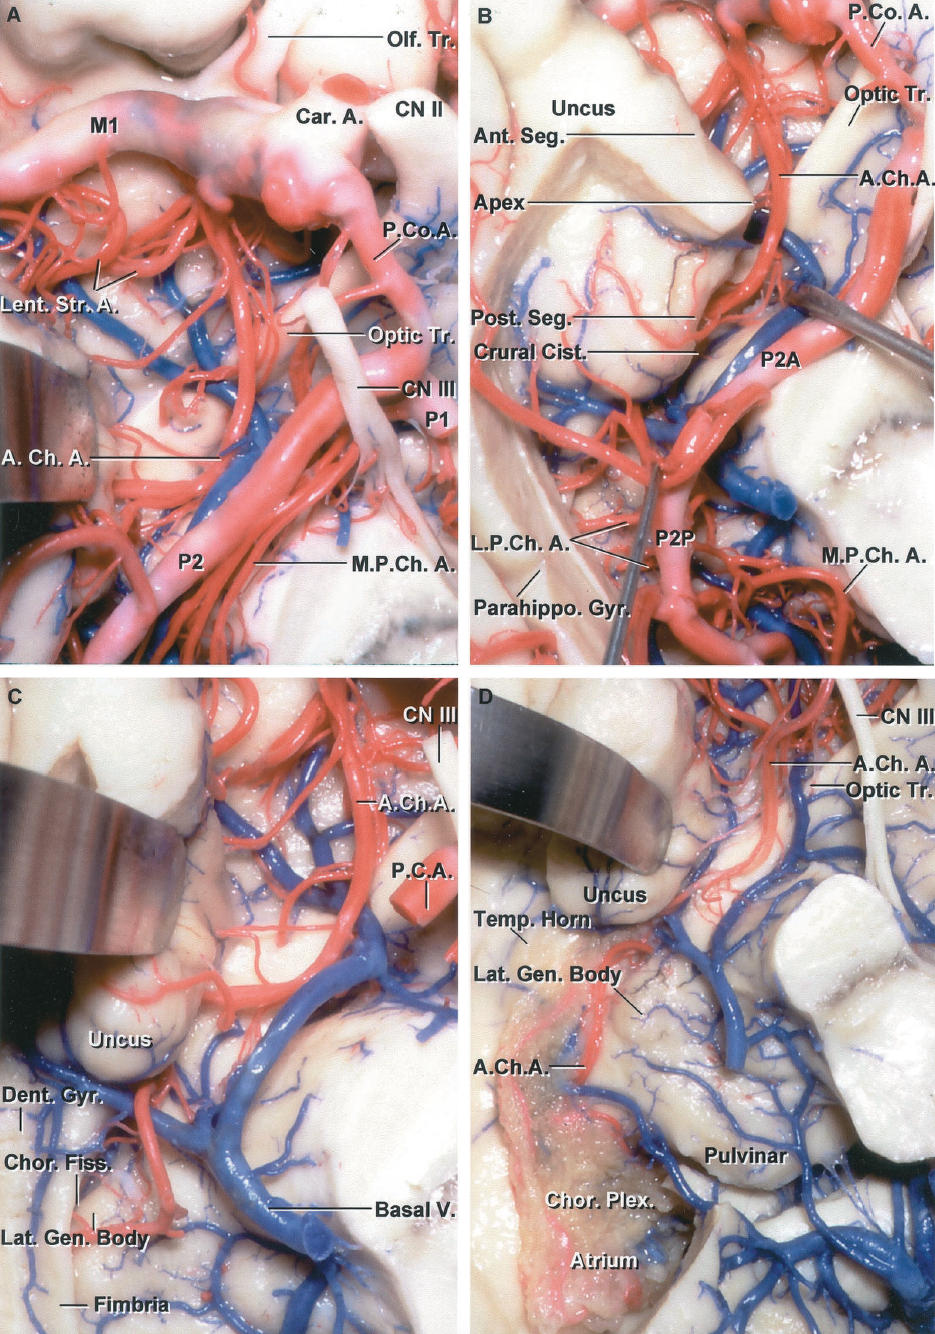 FIGURE 2.9. Anterior choroidal artery. Inferior views. A, the right AChA arises from the posterior wall of the ICA above the origin of the PComA and passes backward below the optic tract and lateral to the PCA. It ascends around the medial surface of the uncus as it travels posteriorly. B, the medial part of the parahippocampal gyrus has been removed. The AChA courses backward medial to the anterior segment of the uncus to reach the uncal apex located at the junction of the anterior and posterior uncal segments where it turns laterally along the upper margin of the posterior uncal segment to reach the choroidal fissure. C, the posterior uncal segment has been retracted. The AChA passes above the posterior uncal segment and enters the temporal horn by passing through the choroidal fissure located between the thalamus above and fimbria of the fornix below. The lateral geniculate body forms the part of the thalamus above where the artery enters the choroidal fissure. The dentate gyrus is located at the lower edge of the fimbria. D, the floor of the temporal horn and the fimbria have been removed to expose the AChA entering the choroid plexus of the temporal horn by passing through the choroidal fissure just behind the posterior segment of the uncus. The lower end of the choroidal fissure and the site where the artery passes through the fissure are called the inferior choroidal point. A., arteries, artery; A.Ch.A., anterior choroidal artery; Ant., anterior; Car., carotid; Chor., choroid, choroidal; Cist., cistern; CN, cranial nerve; Dent., dentate; Fiss., fissure; Gen., geniculate; Gyr., gyrus; L.P.Ch.A., lateral posterior choroidal artery; Lat., lateral; Lent. Str., lenticulostriate; M.P.Ch.A., medial posterior choroidal artery; Olf., olfactory; P.C.A., posterior cerebral artery; P.Co.A., posterior communicating artery; Parahippo., parahippocampal; Plex., plexus; Post., posterior; Seg., segment; Temp., temporal; Tr., tract; V., vein.